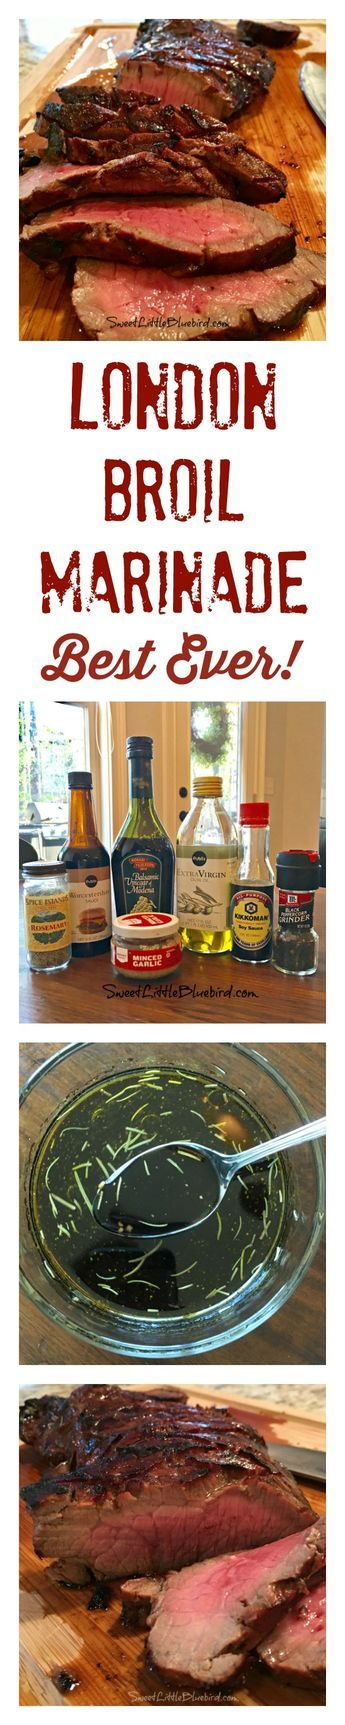 BEST-EVER LONDON BROIL MARINADE - My go-to for the BEST London Broil! A favorite tried & true recipe! Just a few few simple ingredients I always have in hand.